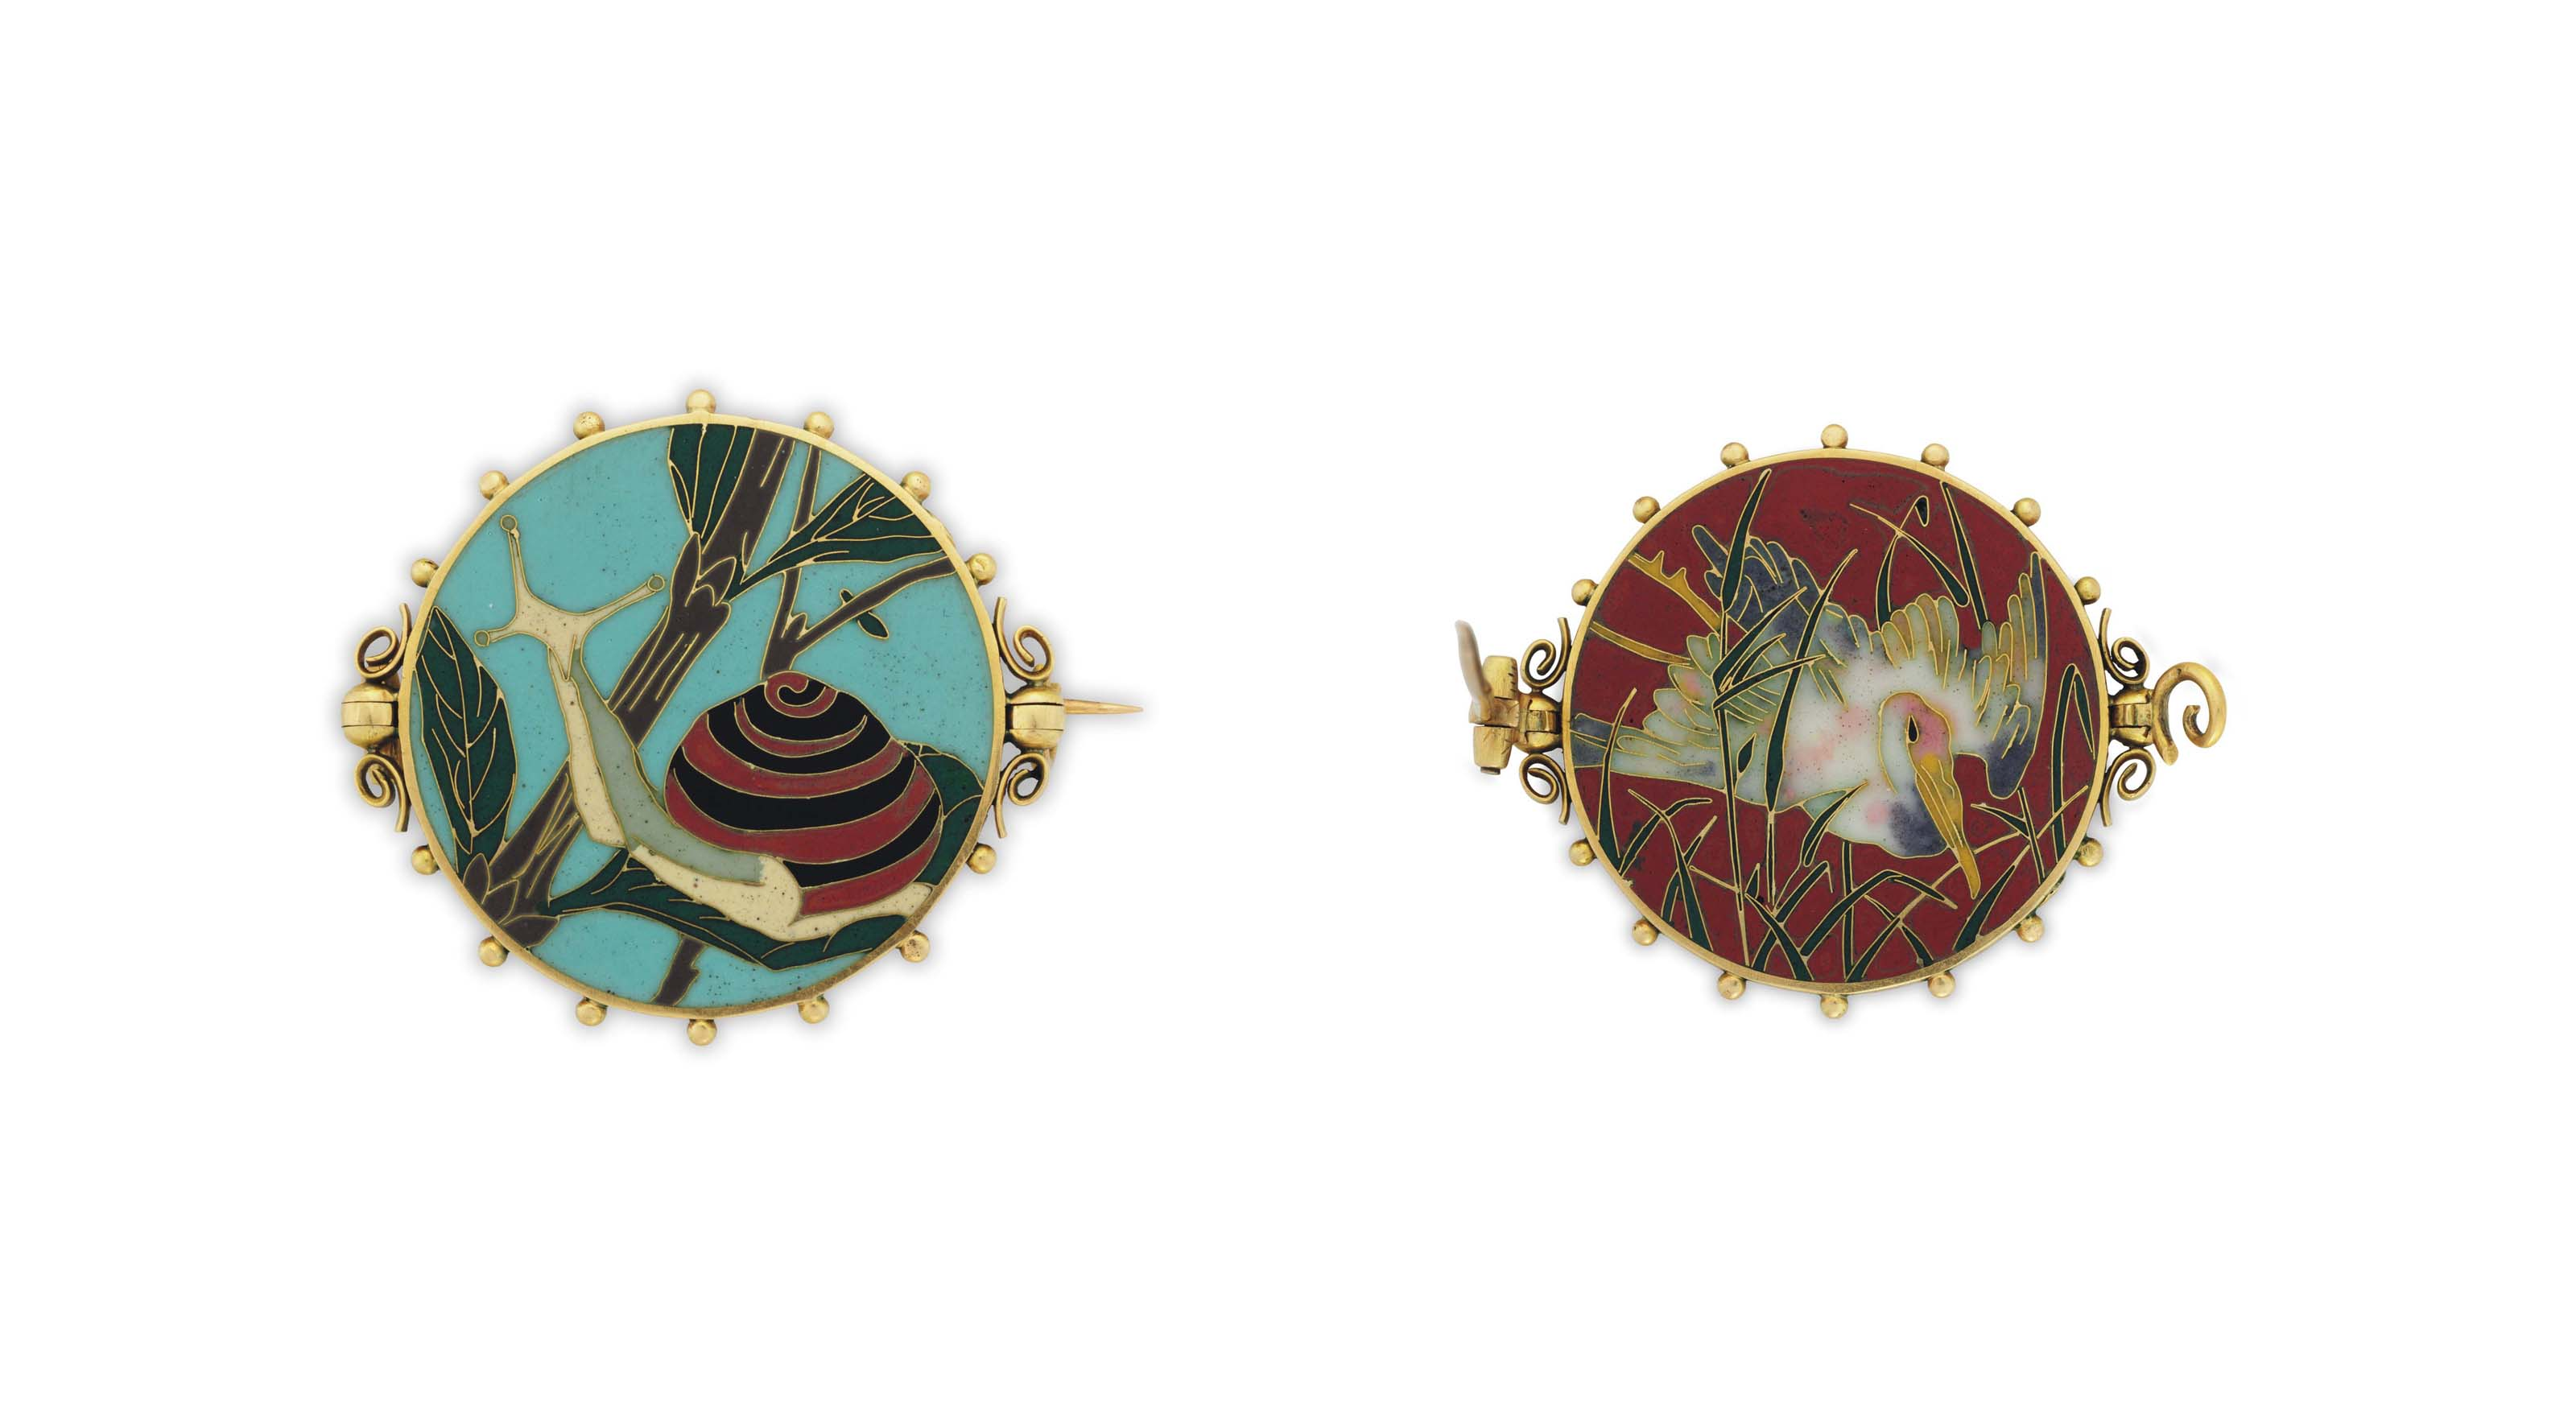 AN ANTIQUE REVERSIBLE ENAMEL BROOCH, BY ALEXIS FALIZE